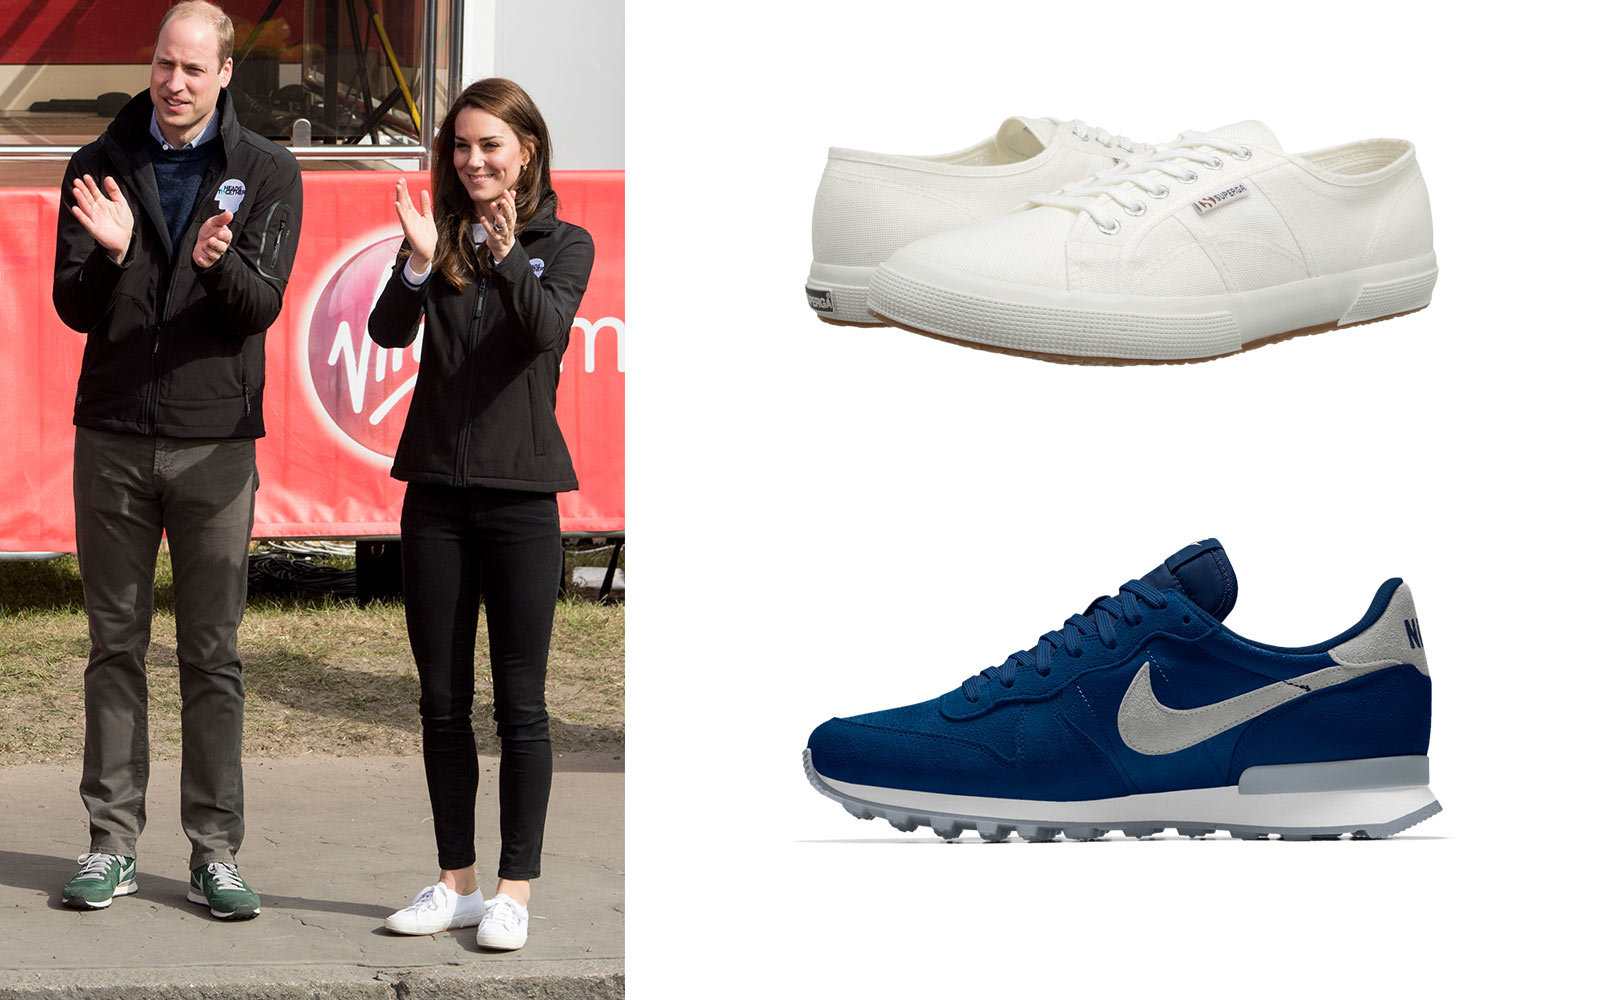 Forum on this topic: Kate Middletons 50 Sneakers Have the Best , kate-middletons-50-sneakers-have-the-best/